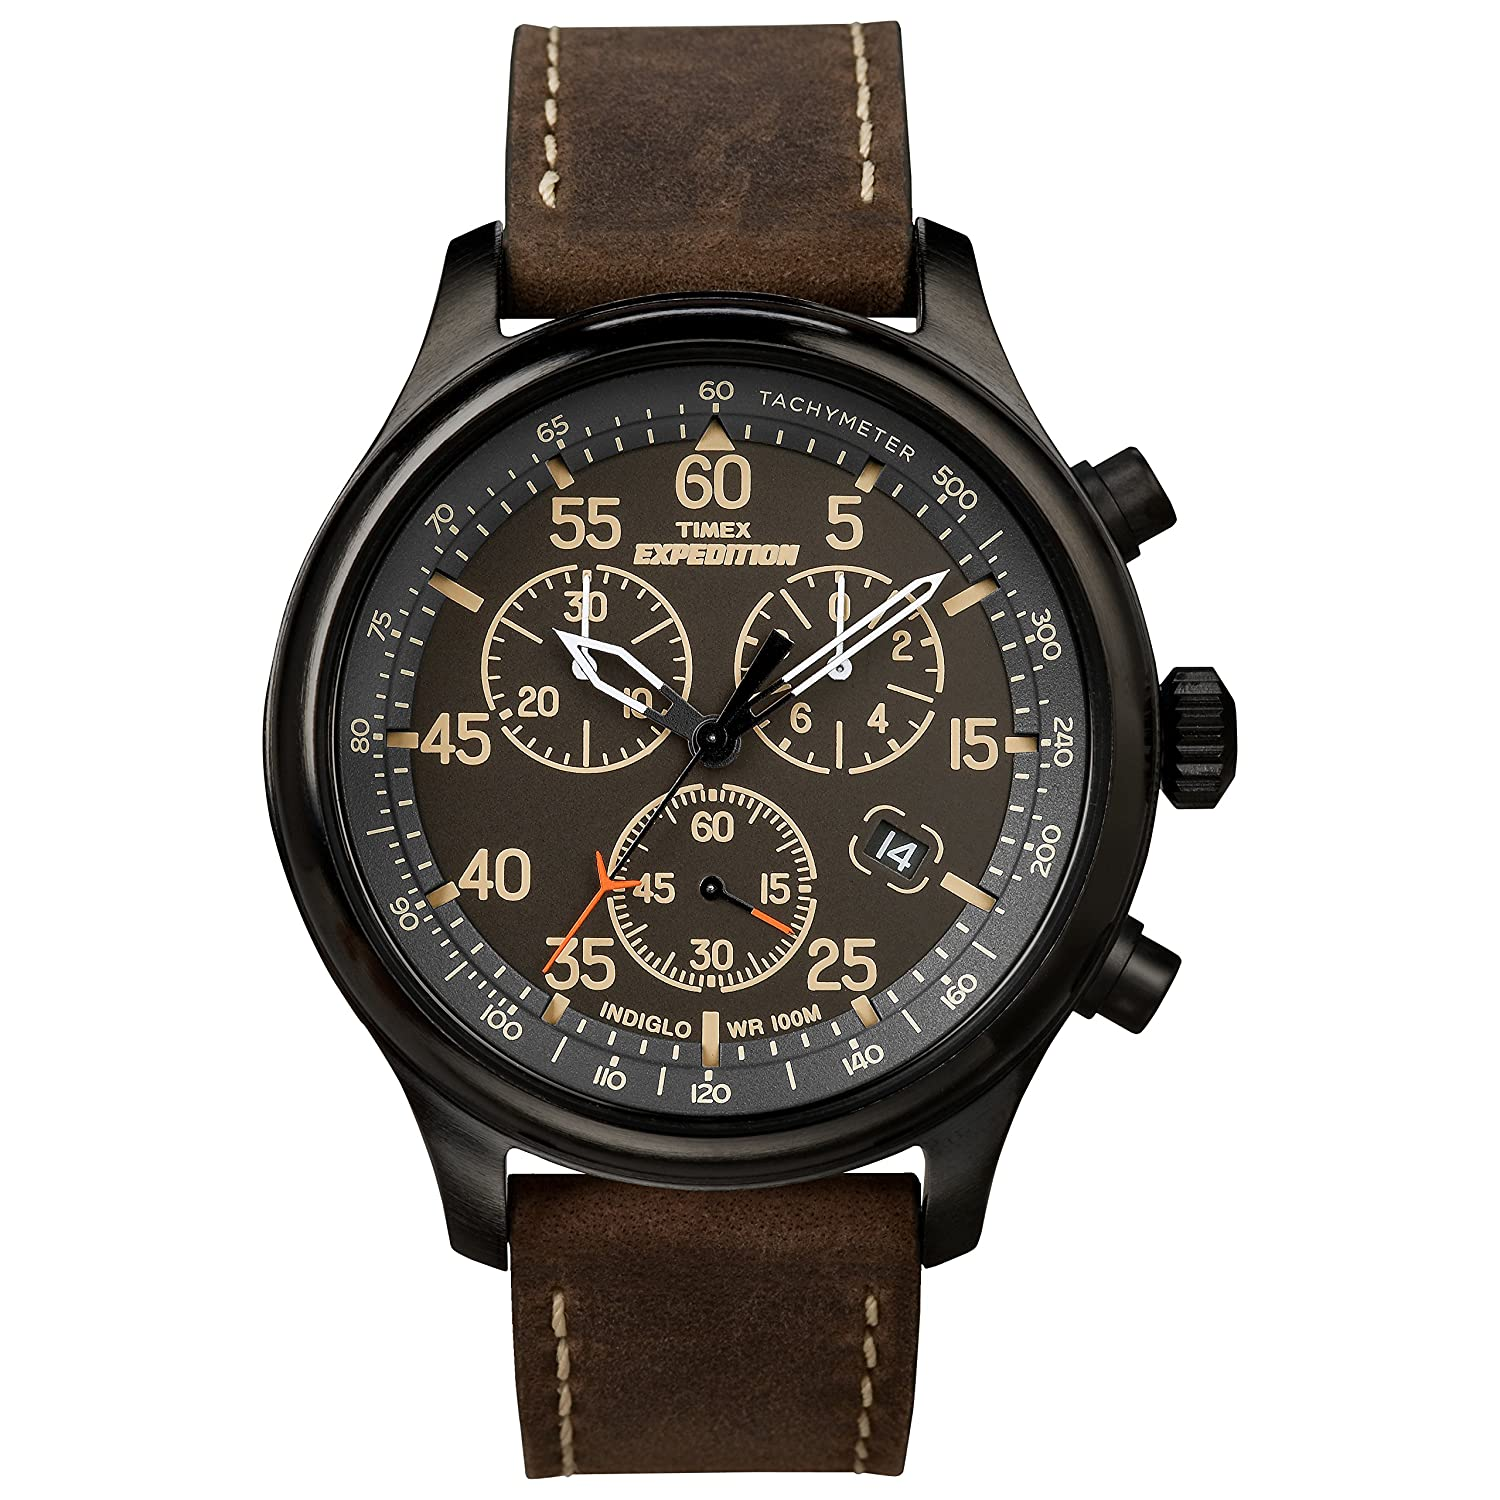 6f0638620c1 Timex Men s Expedition Field Chronograph Watch  Timex  Amazon.co.uk  Watches